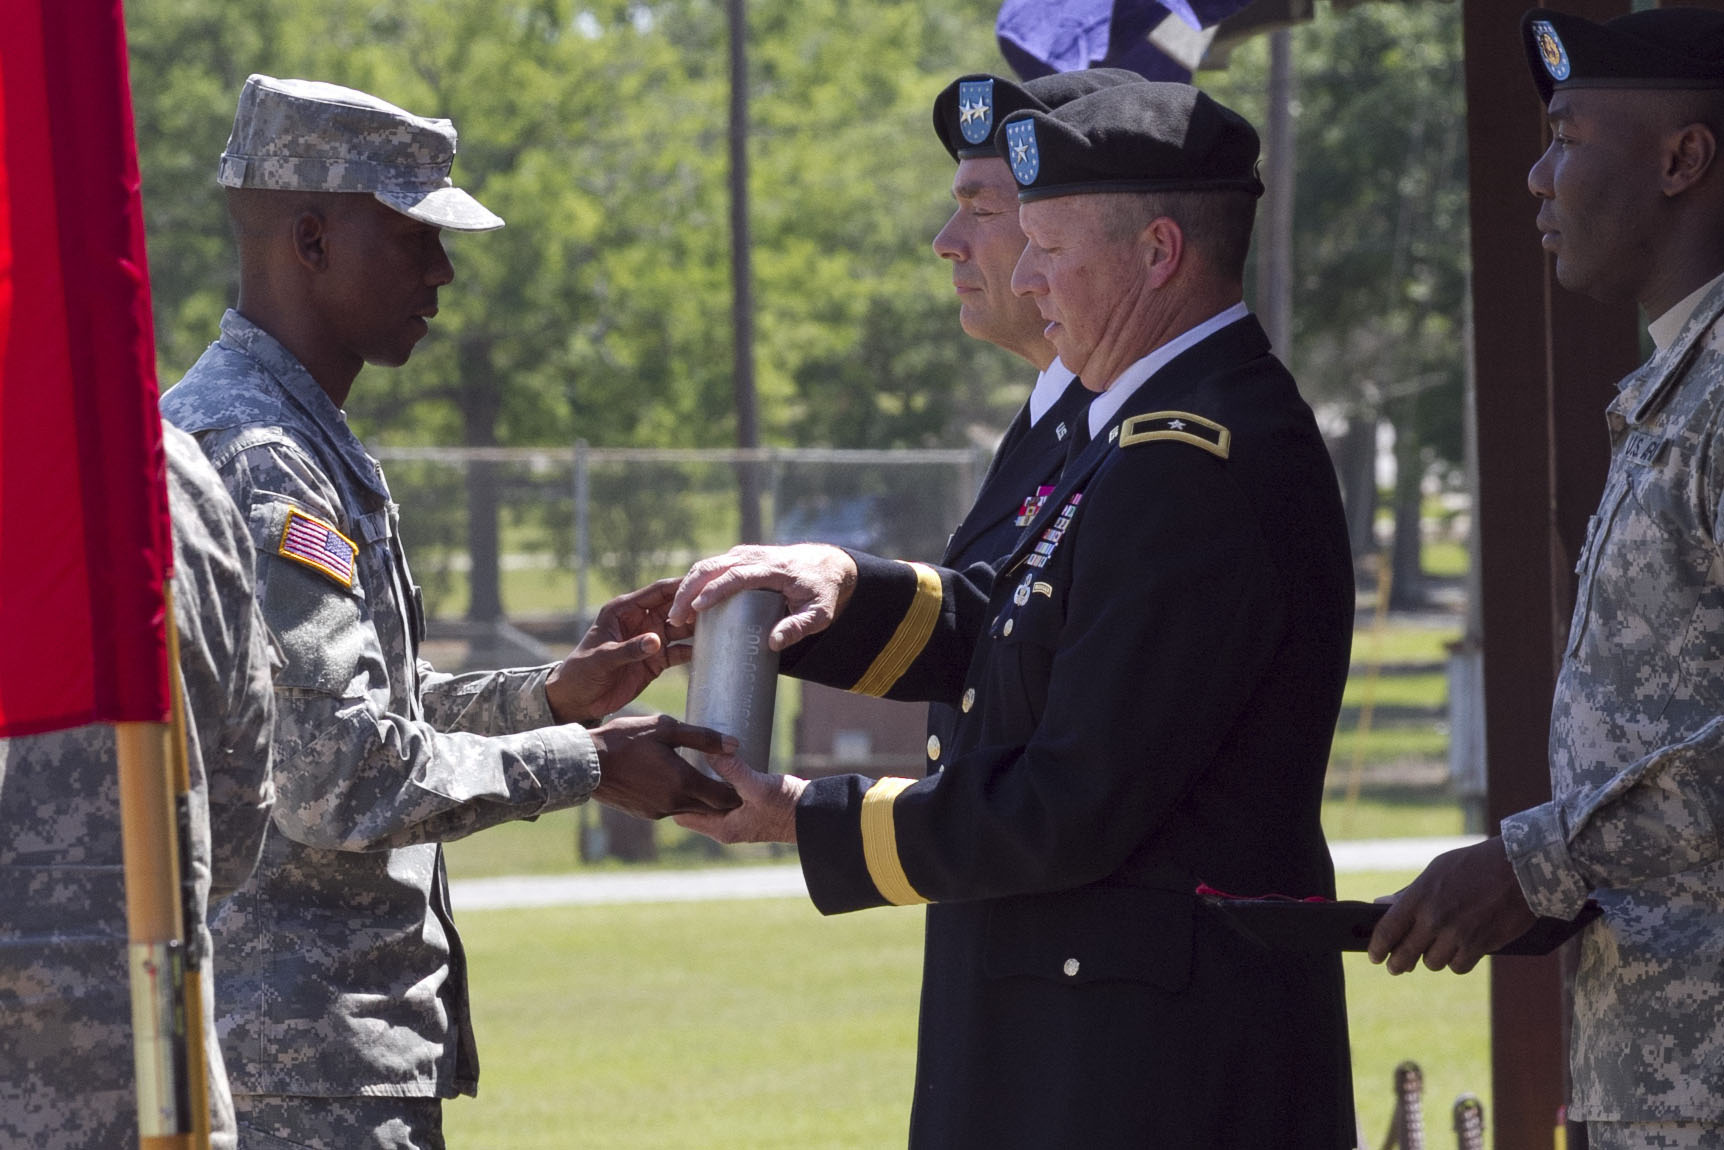 Caption: Gen. William J. Gothard (right) receives a spent shell casing as part of his 2014 retirement ceremony at Fort Jackson, S.C. Gothard says his 36 years of service left him with hearing loss and tinnitus., Credit:  Shantelle Campbell / U.S. Army